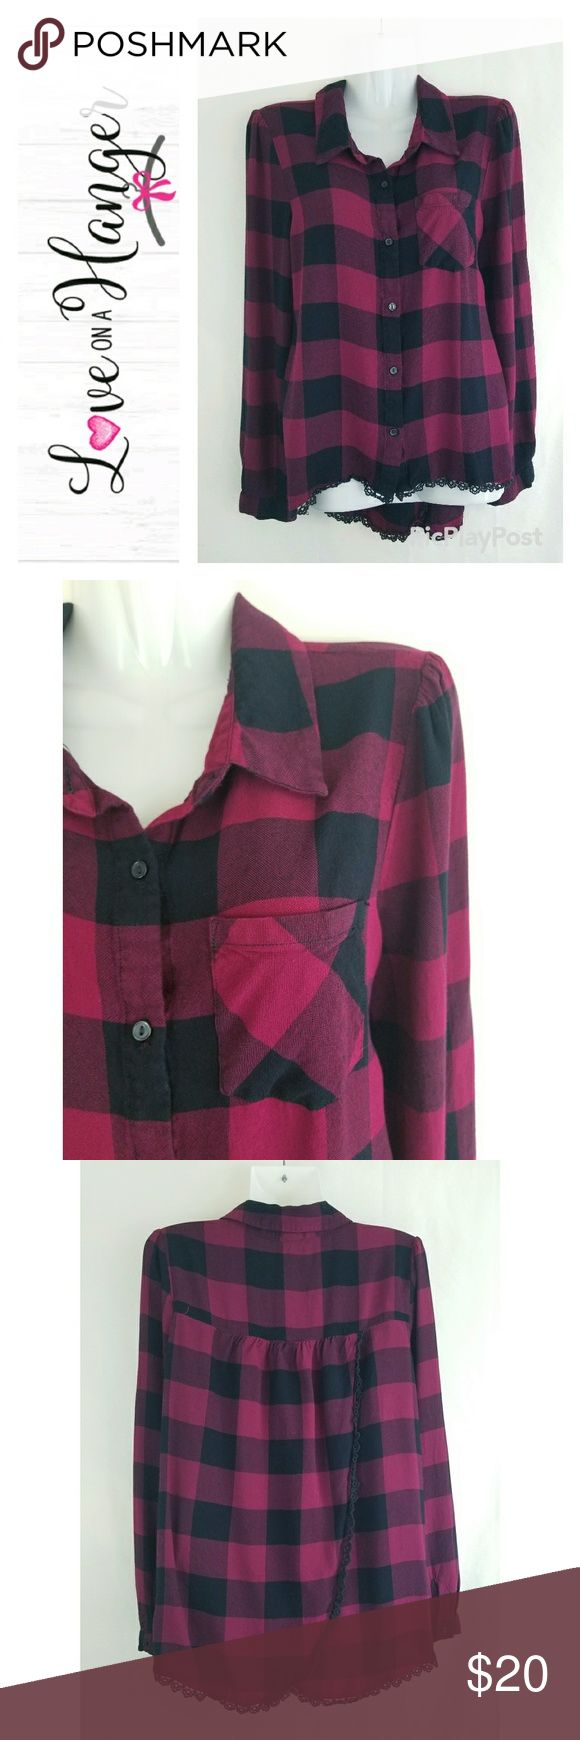 NAME YOUR PRICE Plaid Crochet Trim Tulip Back Top Love on a hanger boutique brand adorable pink and black plaid button up shirt featuring crochet trim, tulip back, and hi-lo style hem. Great pre-owned condition, no visible flaws. love on a hanger Tops Button Down Shirts